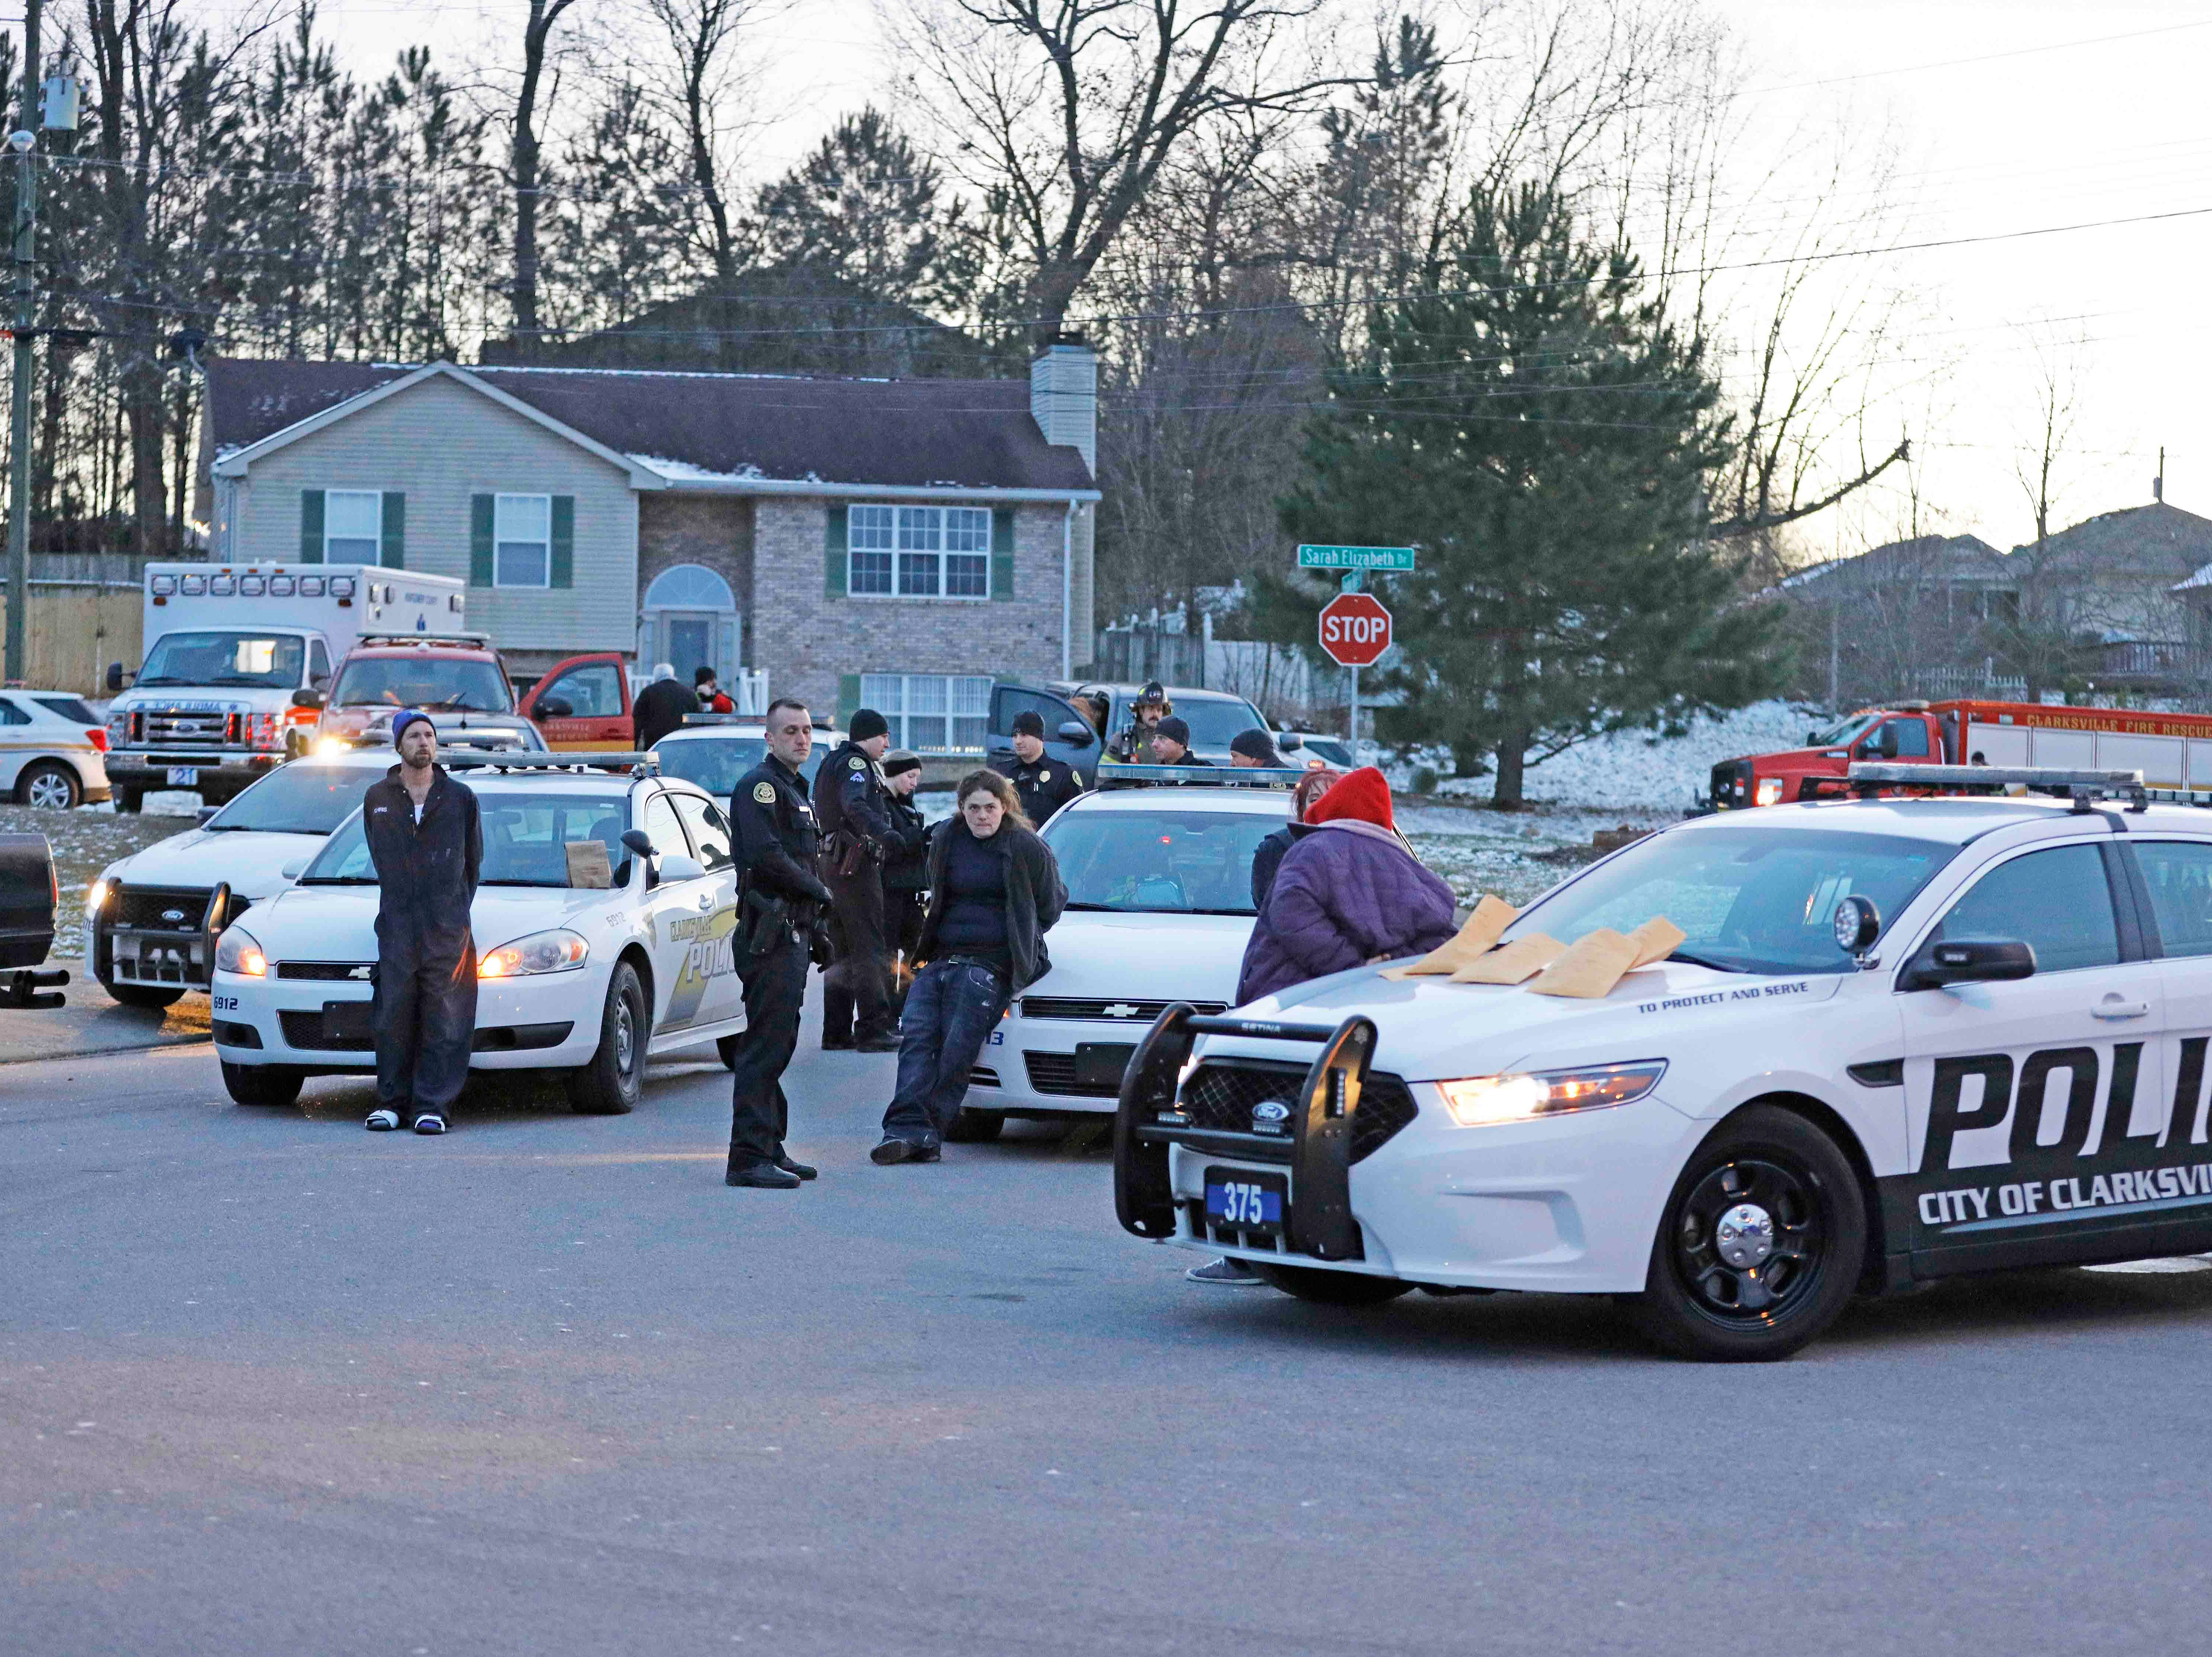 Clarksville Police and other emergency responders spent 10 hours cleaning up an active one-pot meth lab on Heather Denise Court on Monday, Jan. 21, 2019.